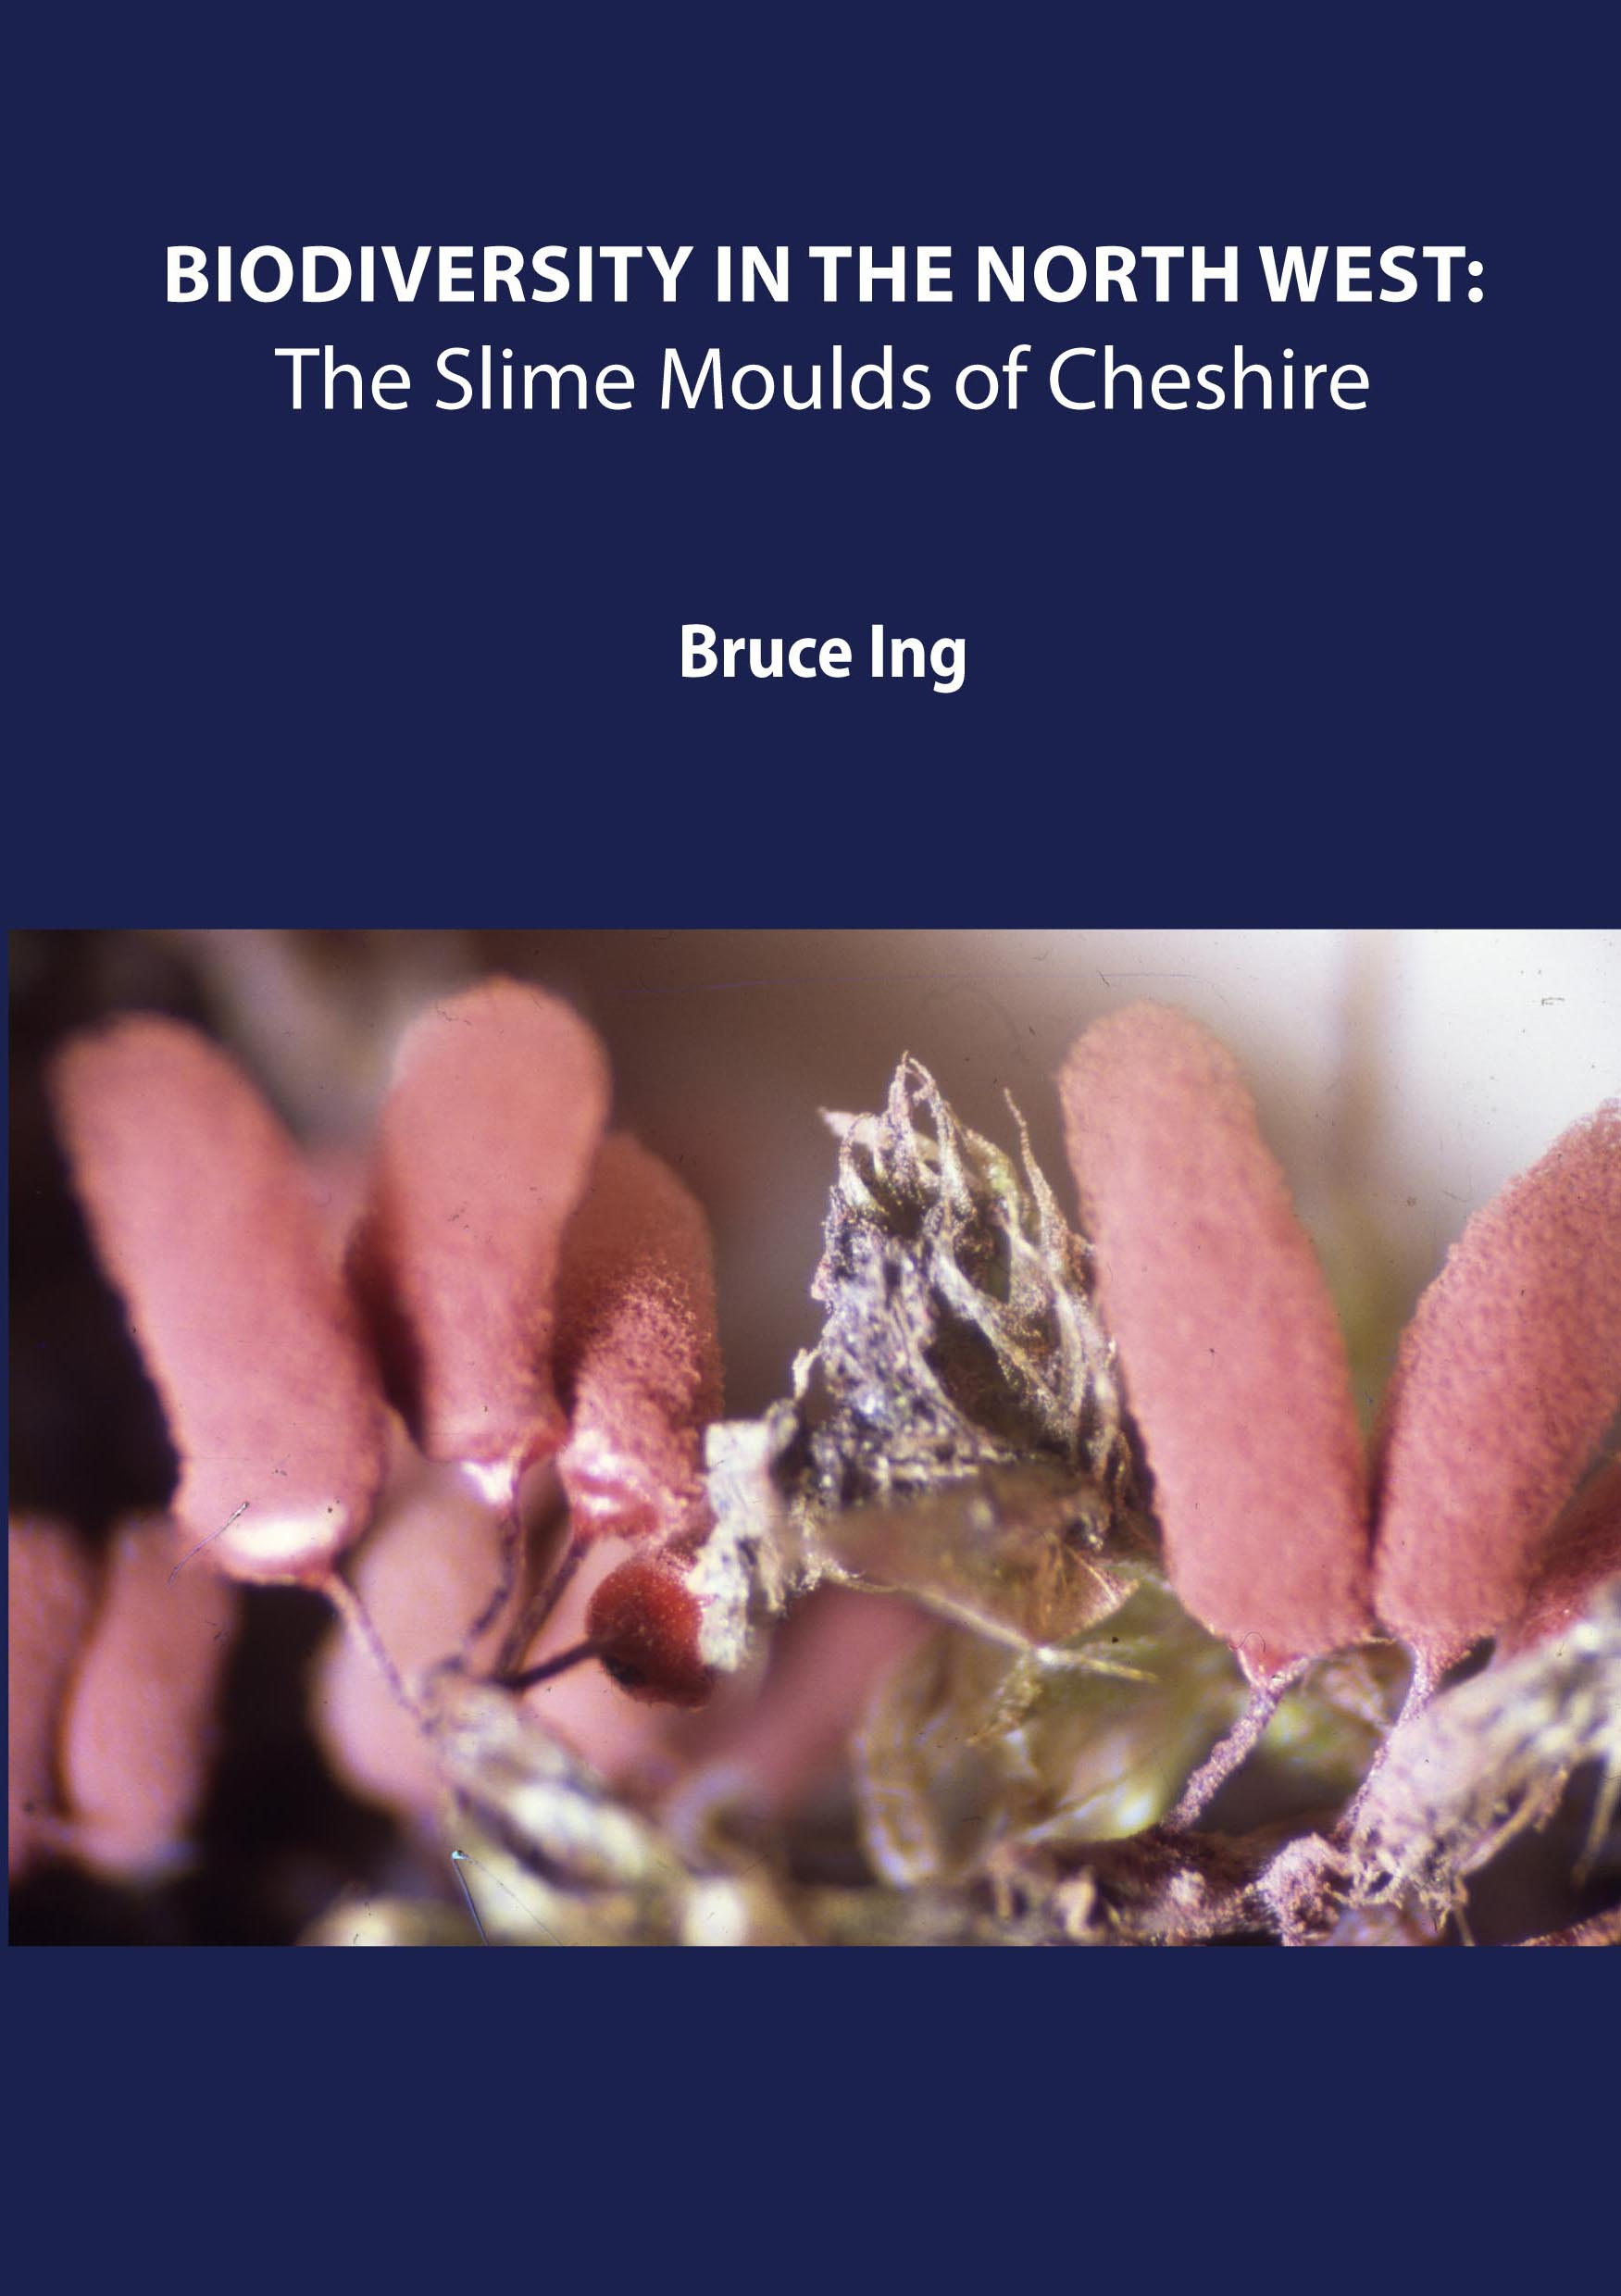 Biodiversity in the North West: The Slime Moulds of Cheshire